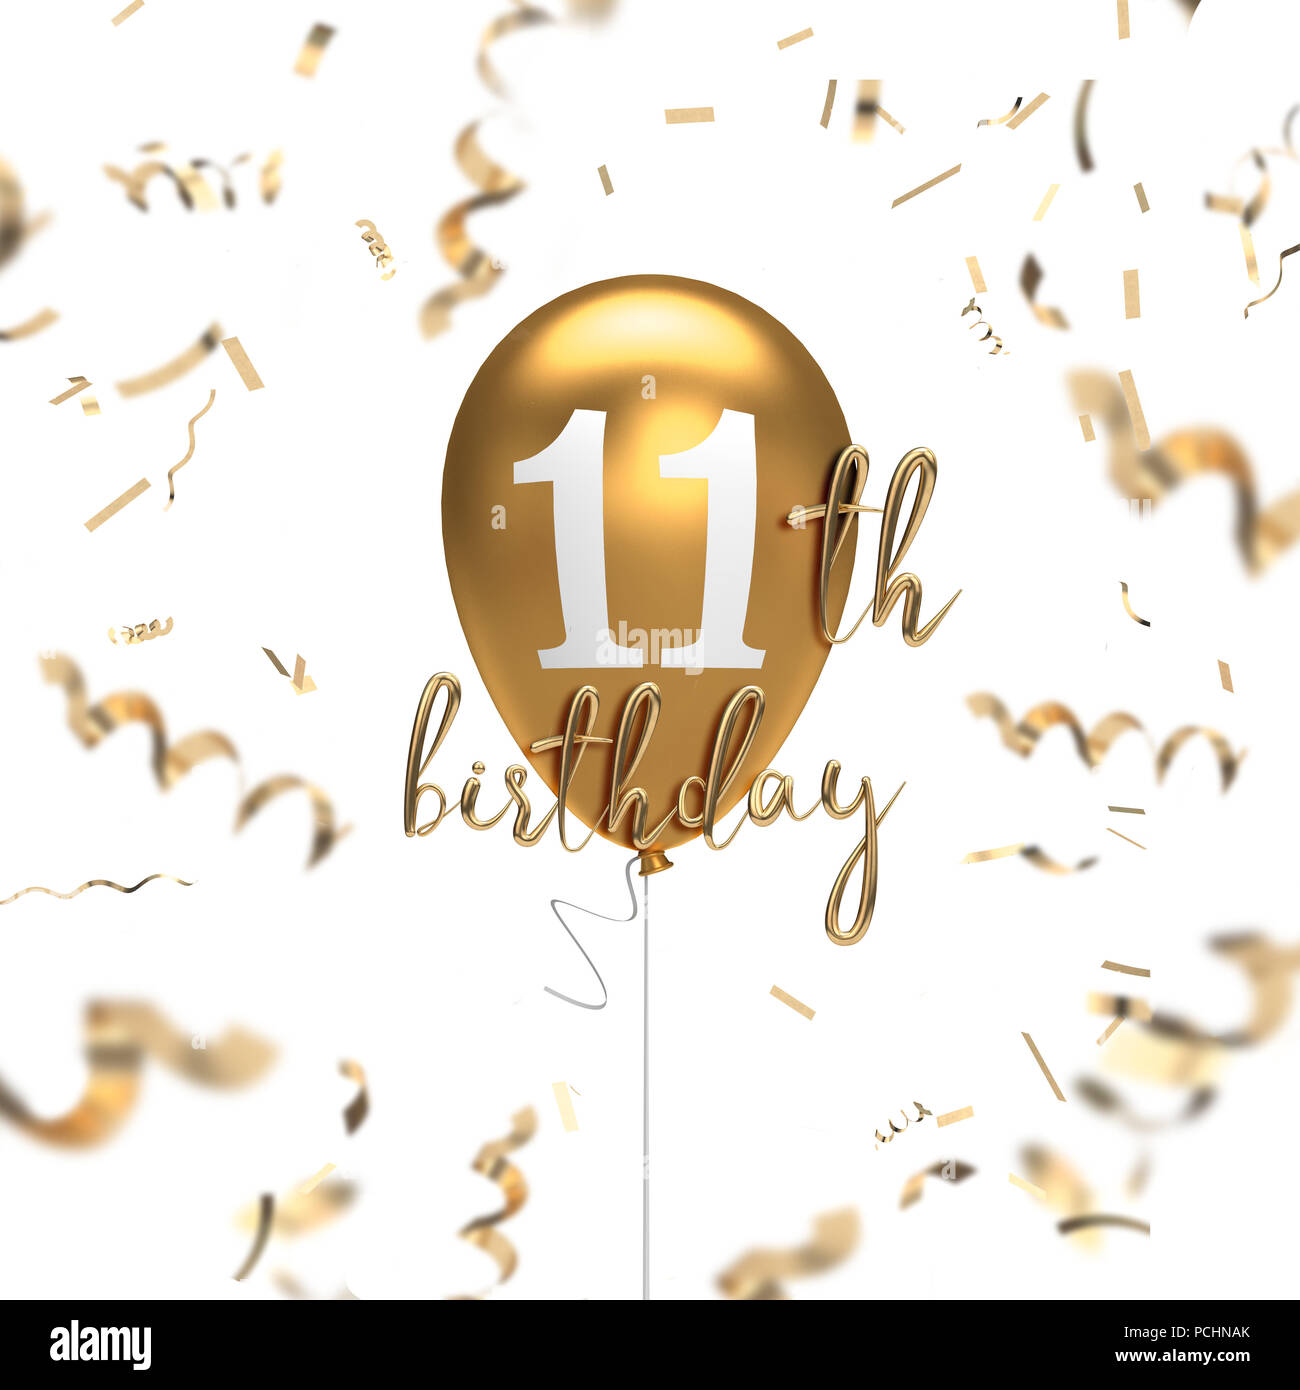 Happy 11th Birthday Gold Balloon Greeting Background 3D Rendering